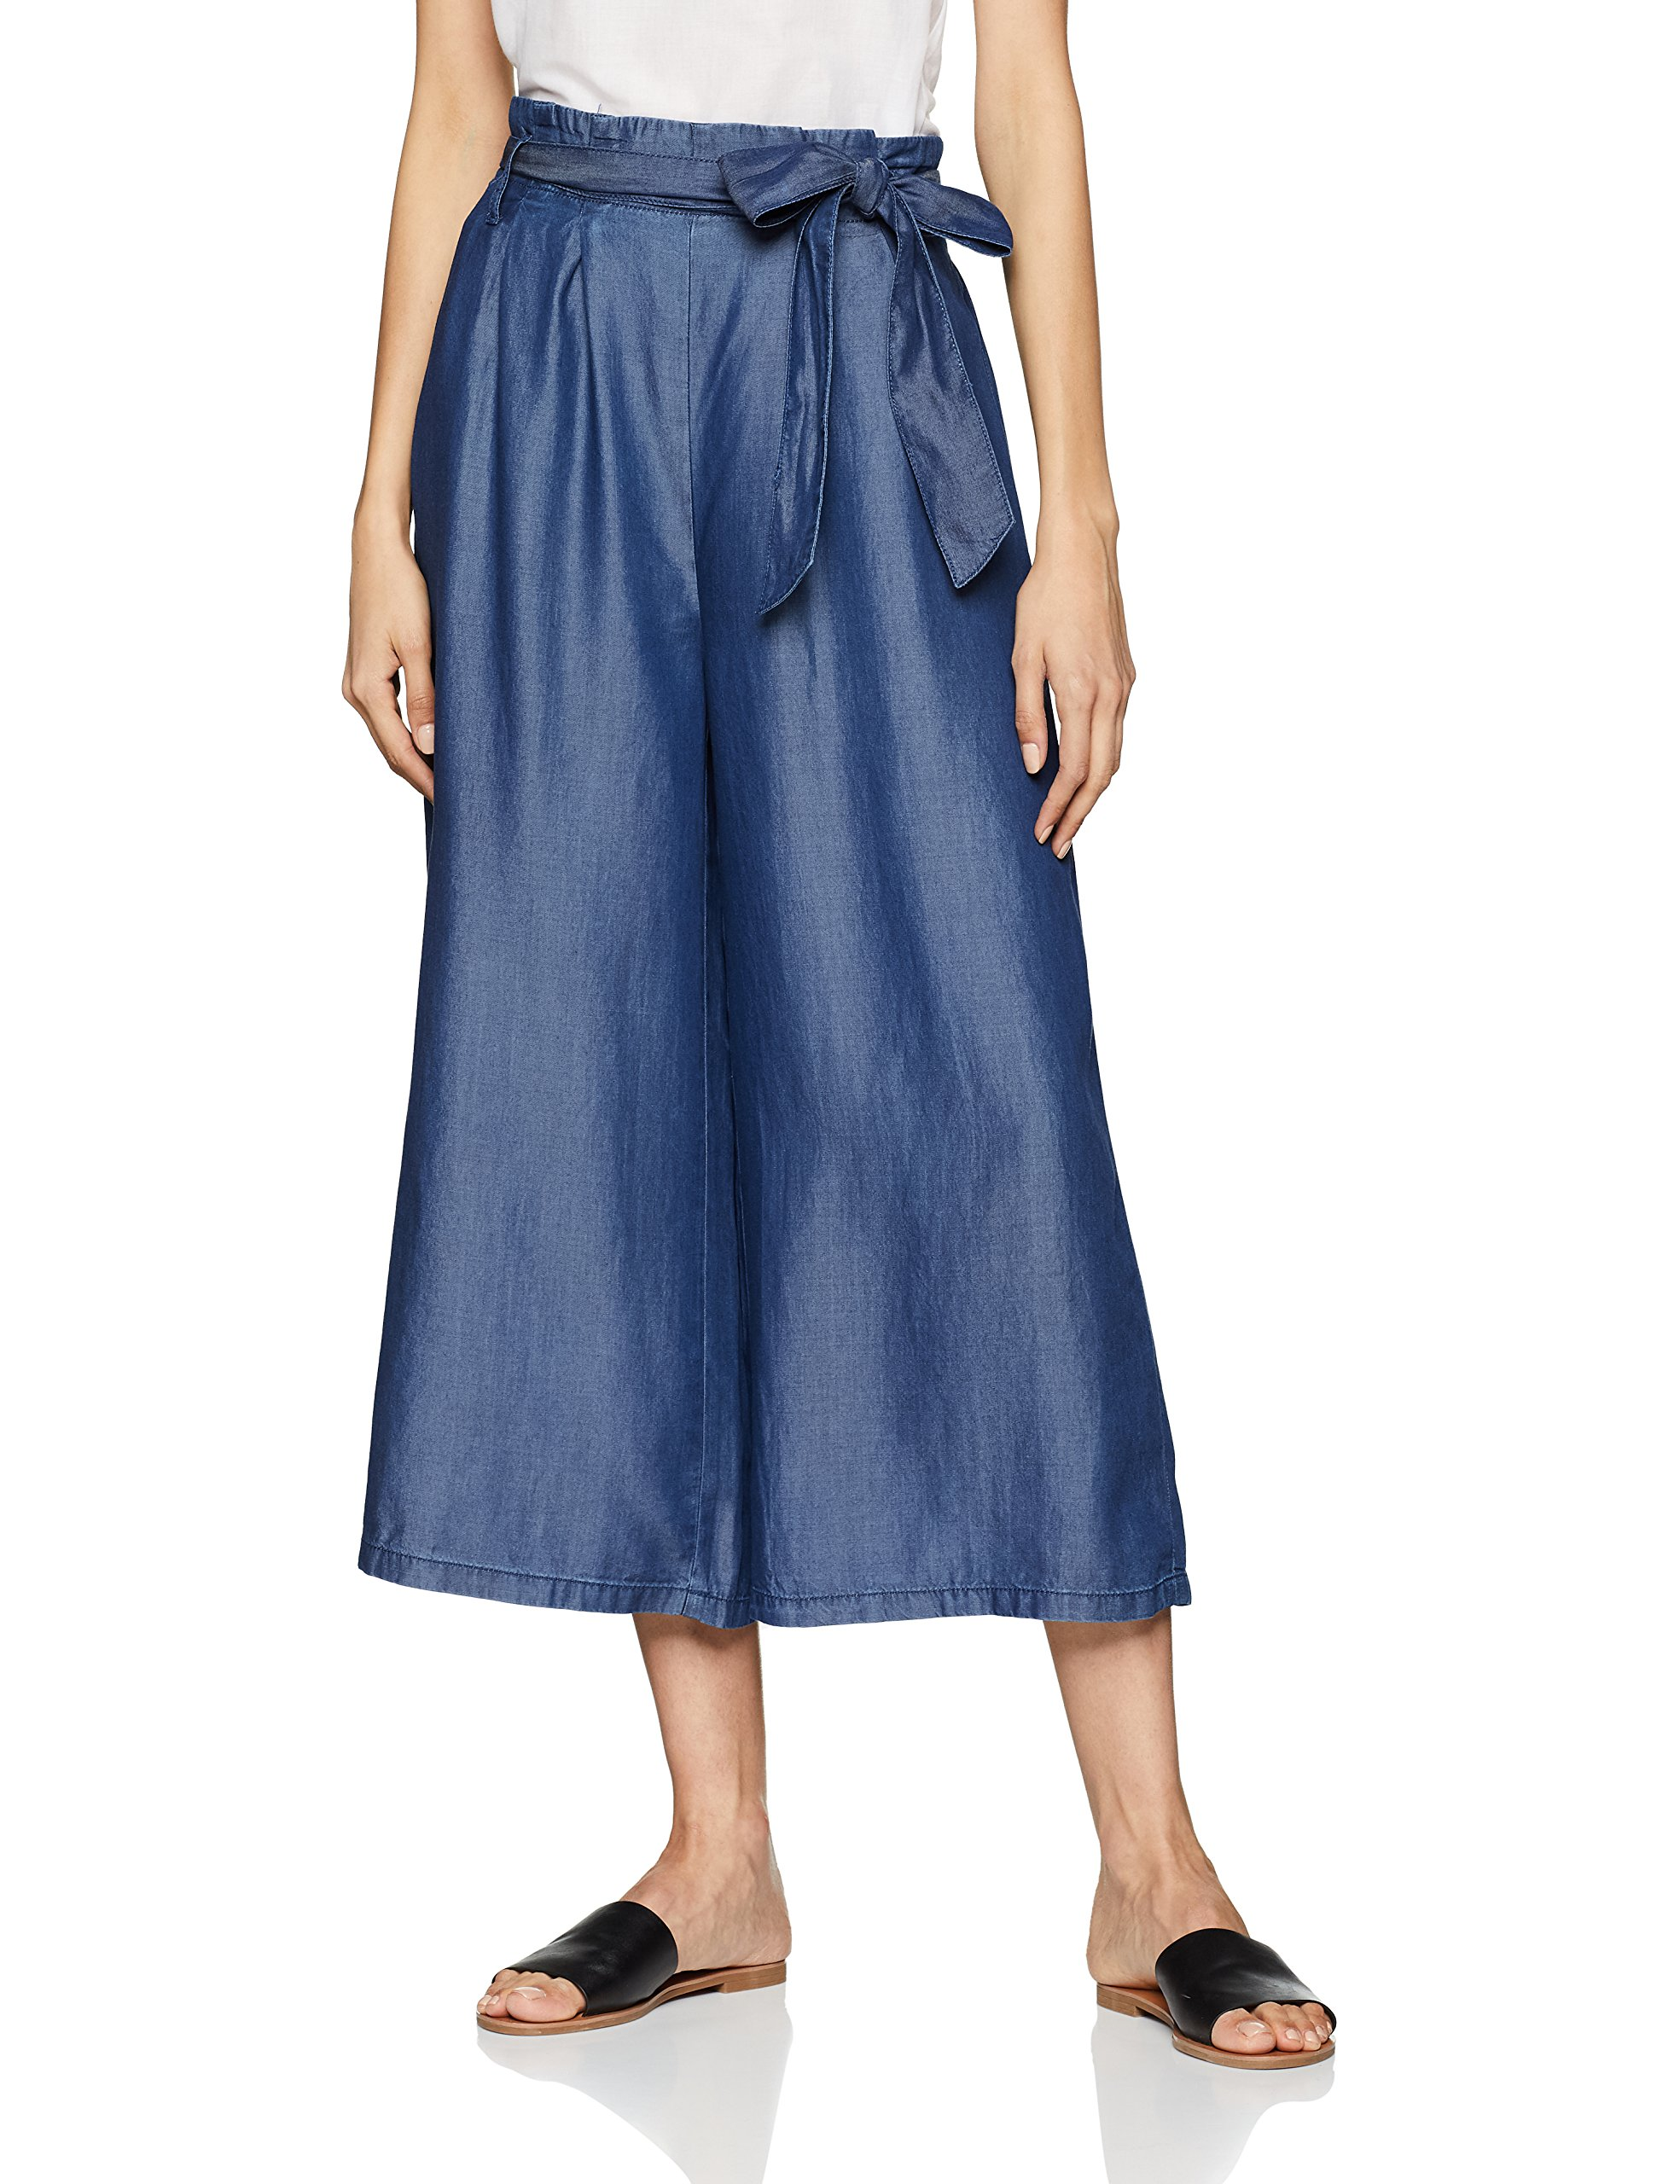 PantalonBleulight Colors FabricantLargeFemme Benetton United Of 90146taille Trousers Blue pUzMVqS